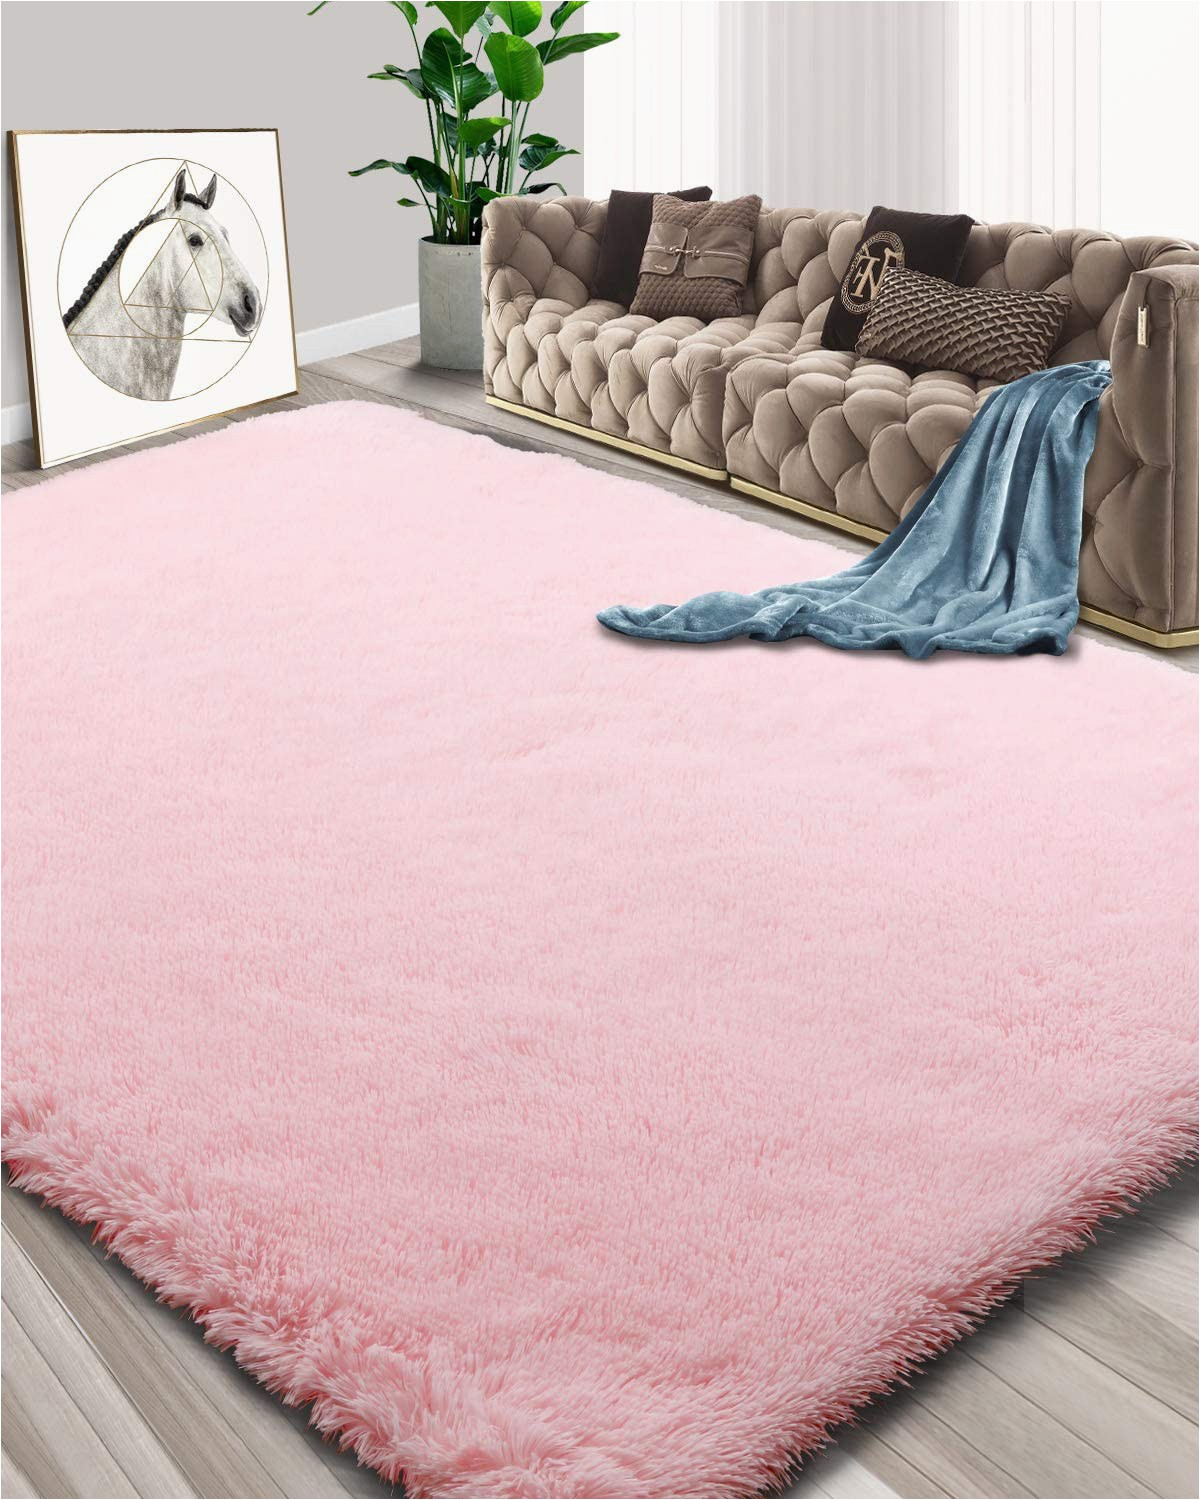 Fluffy area Rugs for Bedroom Foxmas Ultra soft Fluffy area Rugs for Bedroom Kids Room Plush Shaggy Nursery Rug Furry Throw Carpets for Boys Girls College Dorm Fuzzy Rugs Living